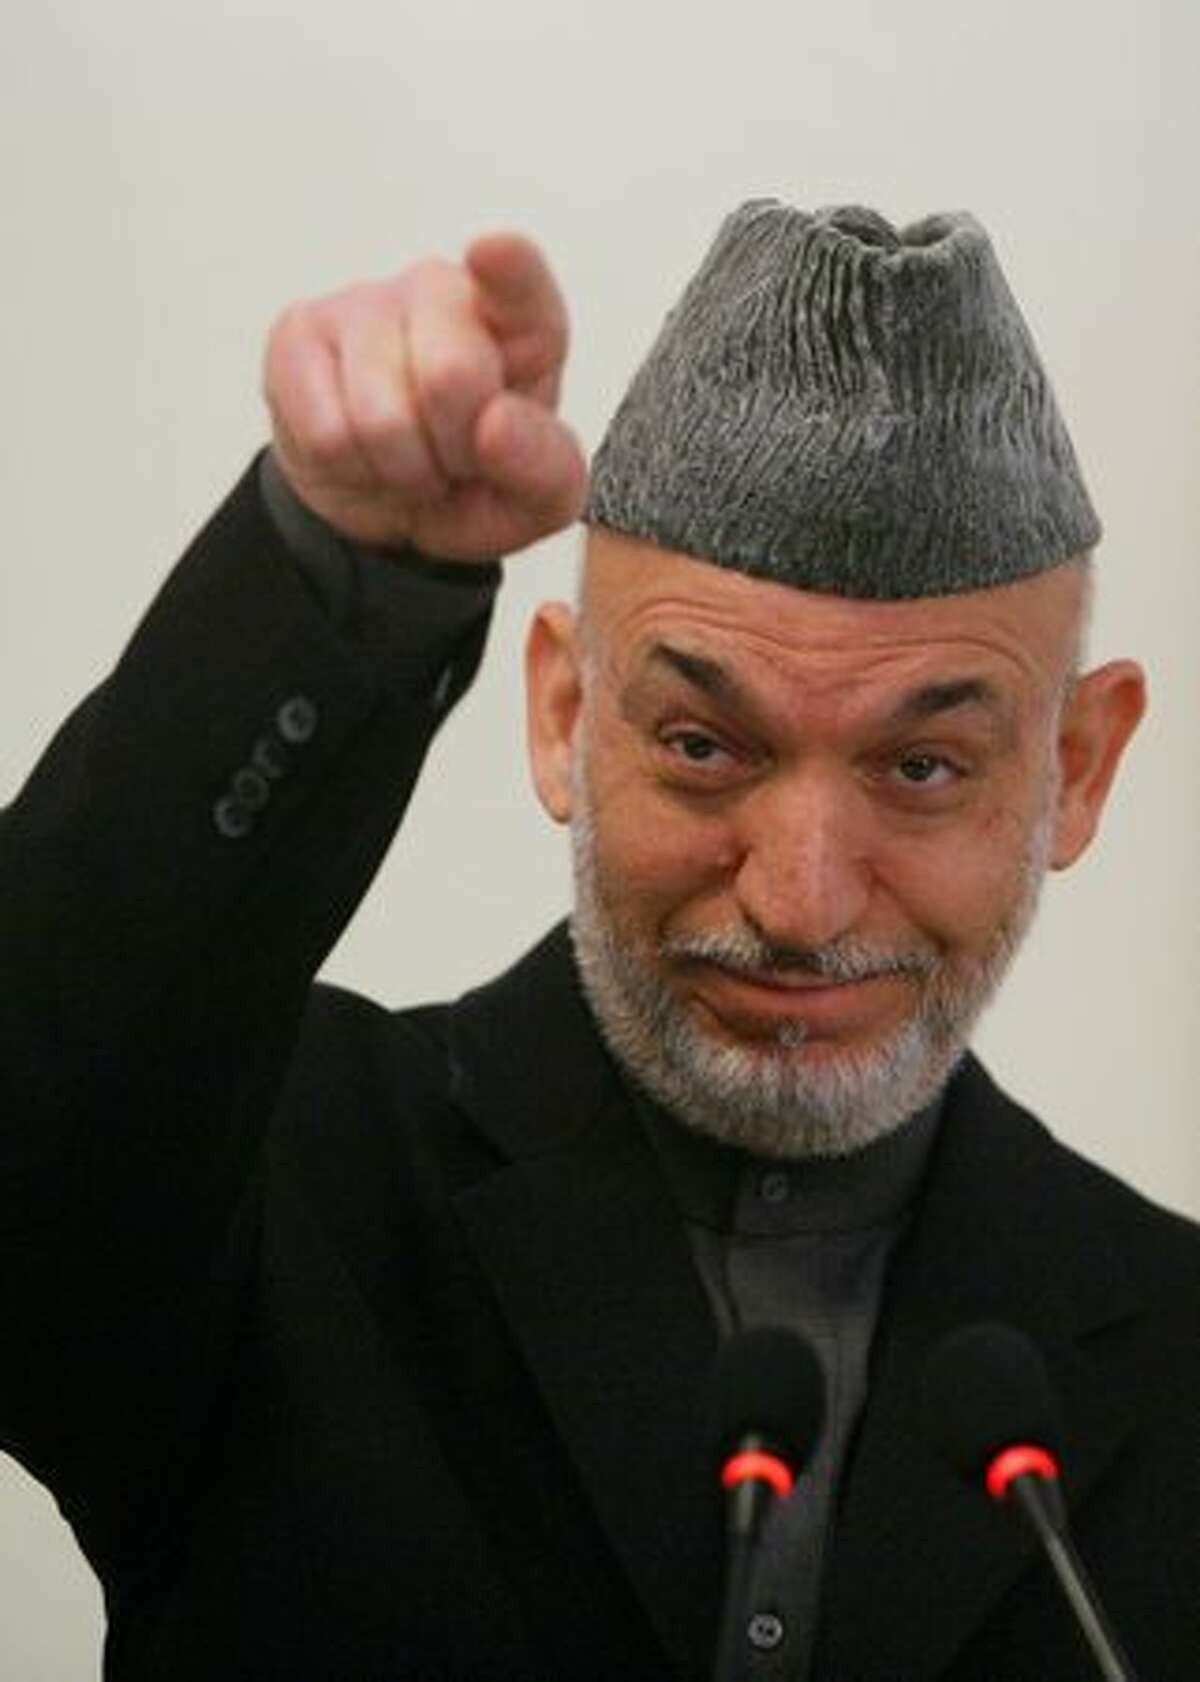 Afghanistan's President Hamid Karzai attends a joint press conference with Belgian Prime Minister Yves Leterme on Sunday in Kabul, Afghanistan. Karzai faced strong criticism regarding his propsed new cabinet. The attorney general's office is currently investigating both serving and former ministers in relation to corruption charges.